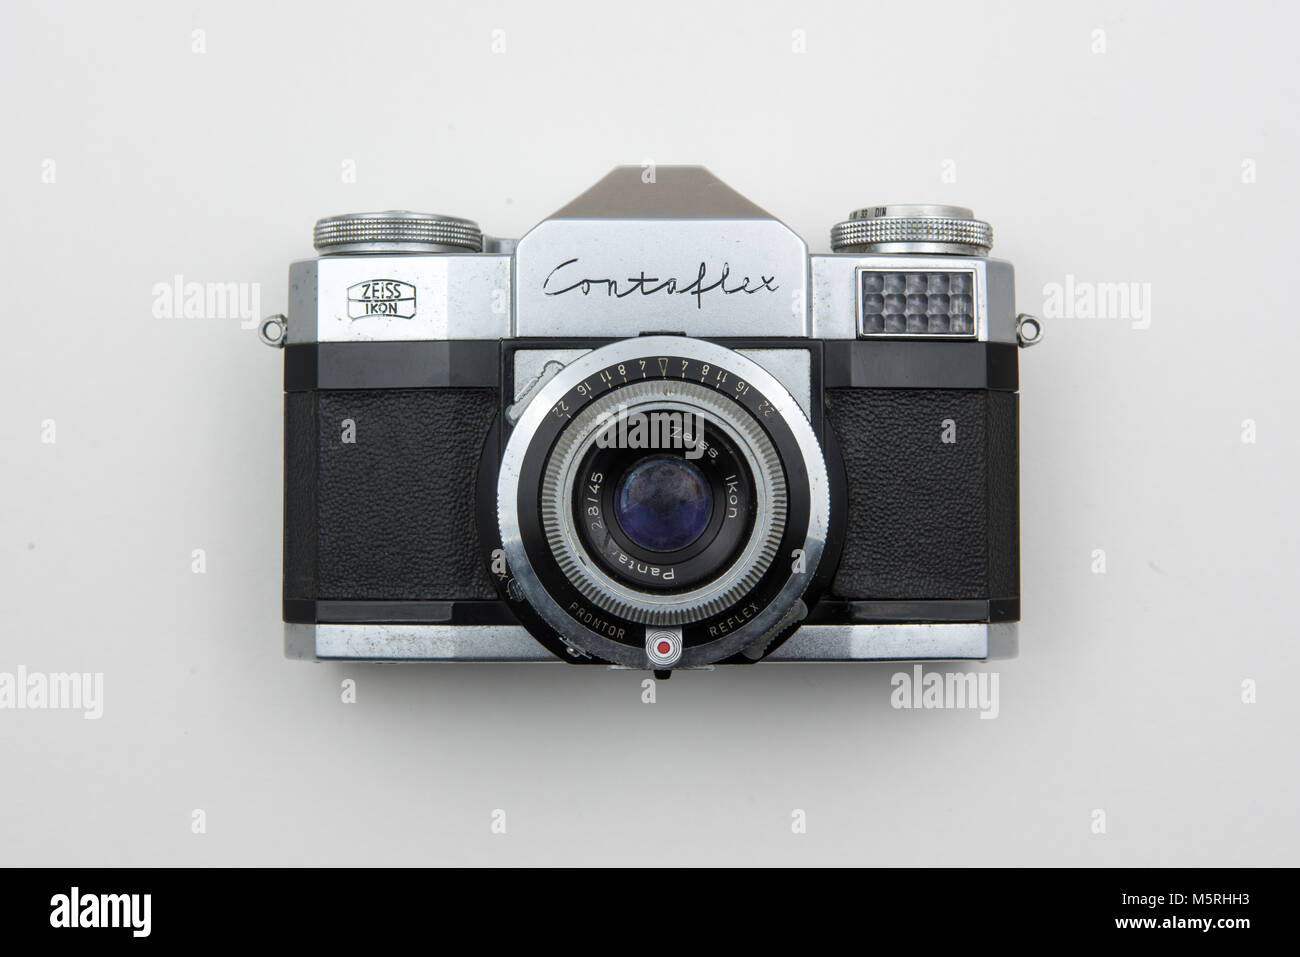 work in the studio research on old cameras - Stock Image